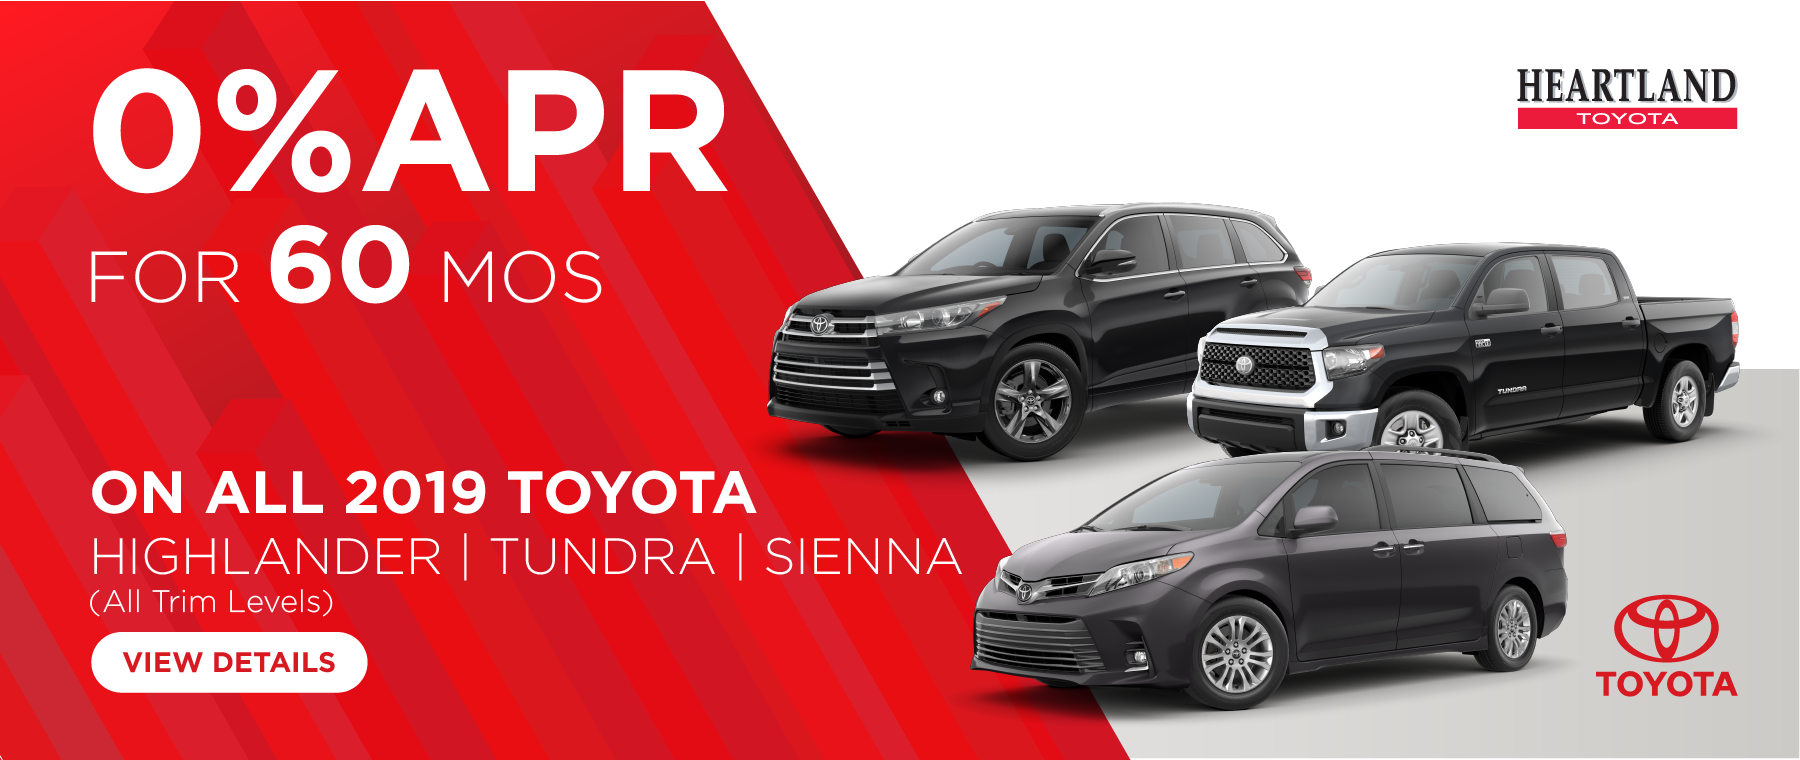 * Offer valid on 2019 Toyota Tundra all trims, excluding the Pro, 2019 Toyota Sienna all trims,  and 2019 Toyota Highlander all gas models, excluding the hybrids. 0% for 60 mos. MSRP starting at $42,400. Valid on VIN: 5TFDY5F16KX844383, 5TDDZ3DC3KS224327, K5TDDZRFH4KS984035. Subject to credit approval through participating lender – not all will qualify. Residency restrictions apply. Down payment and monthly payment may vary. Excludes state and local taxes, tags, registration and title, insurance and dealer charges. A negotiable dealer documentary service fee of up to $150 may be added to the sale price or capitalized cost. Exp. 7/31/2019.